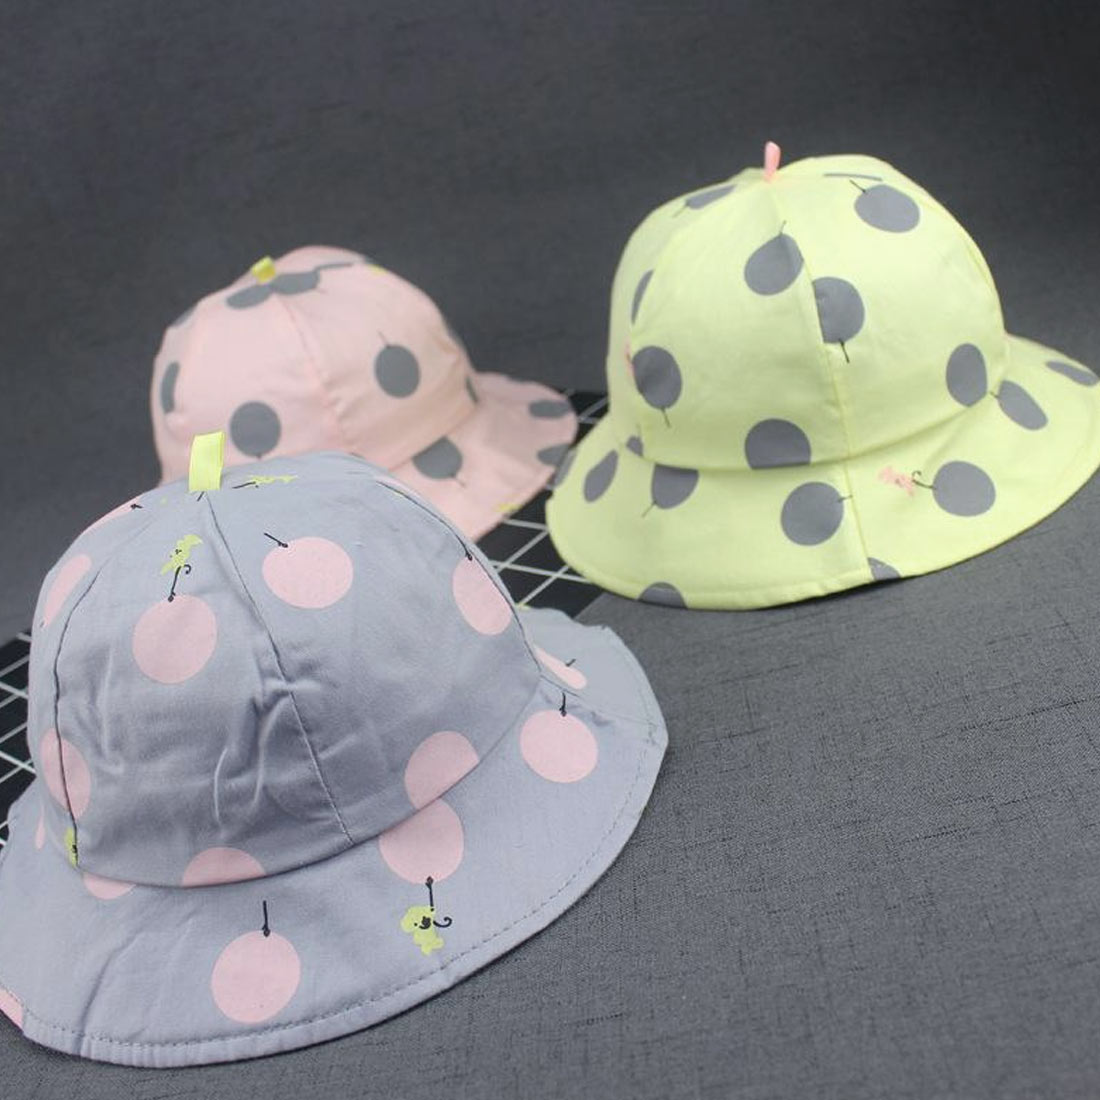 Cute Toddler Infant Kids Soft Cotton Sun Cap Summer Outdoor Breathable Hats Baby Beach Sunhat Suit for 1 4 Years Old kids in Men 39 s Bucket Hats from Apparel Accessories